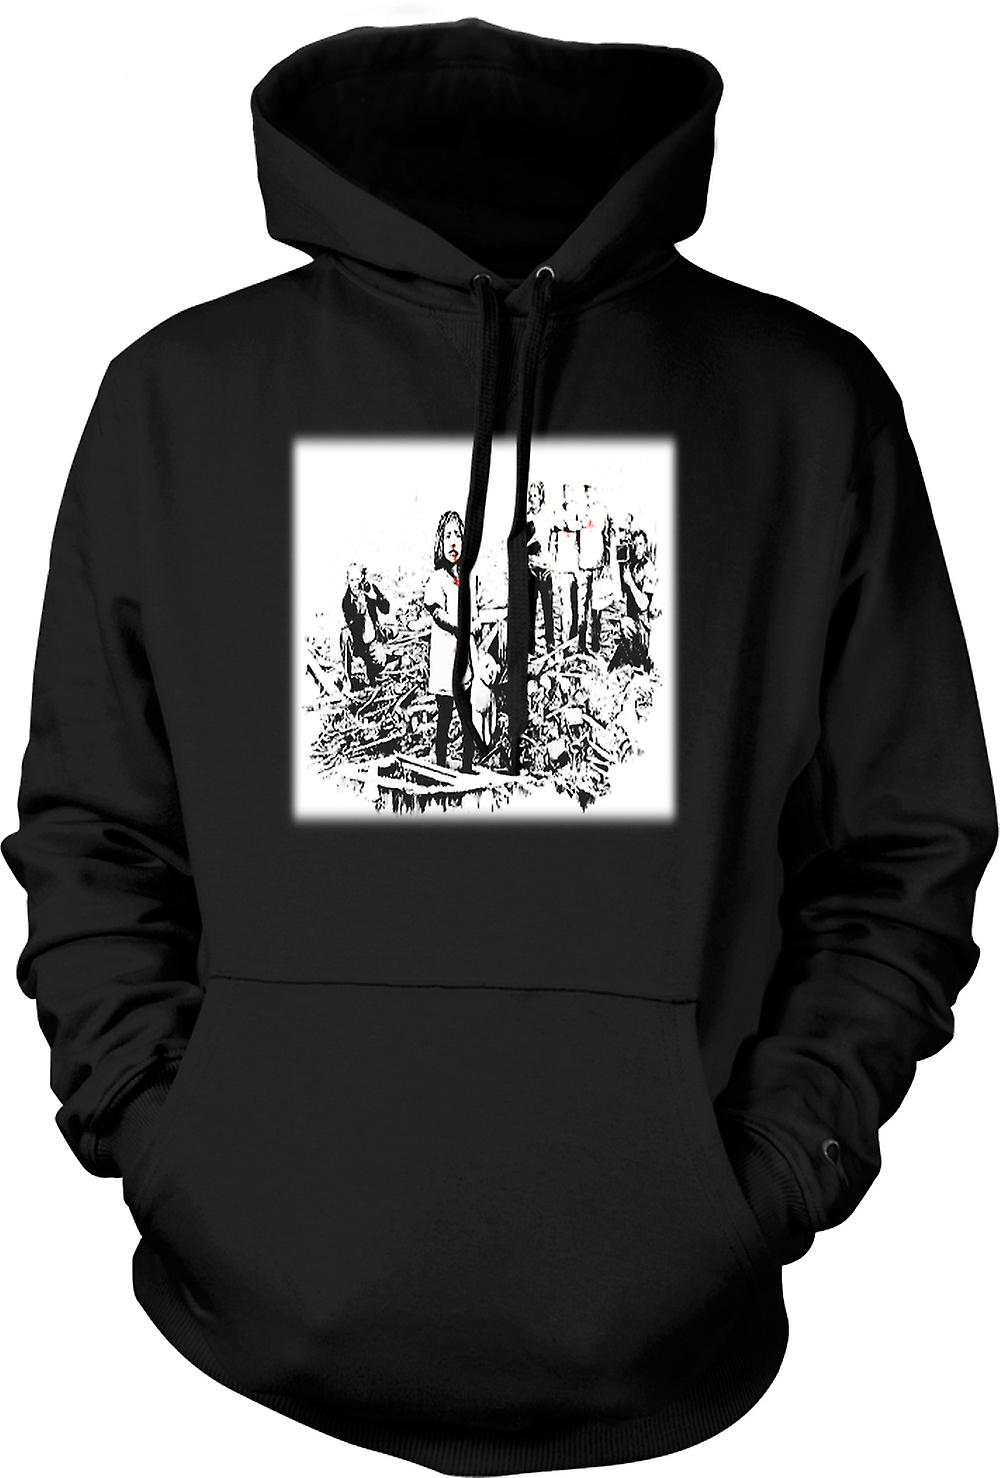 Hoodie Kids - Banksy catastrophes - Conception